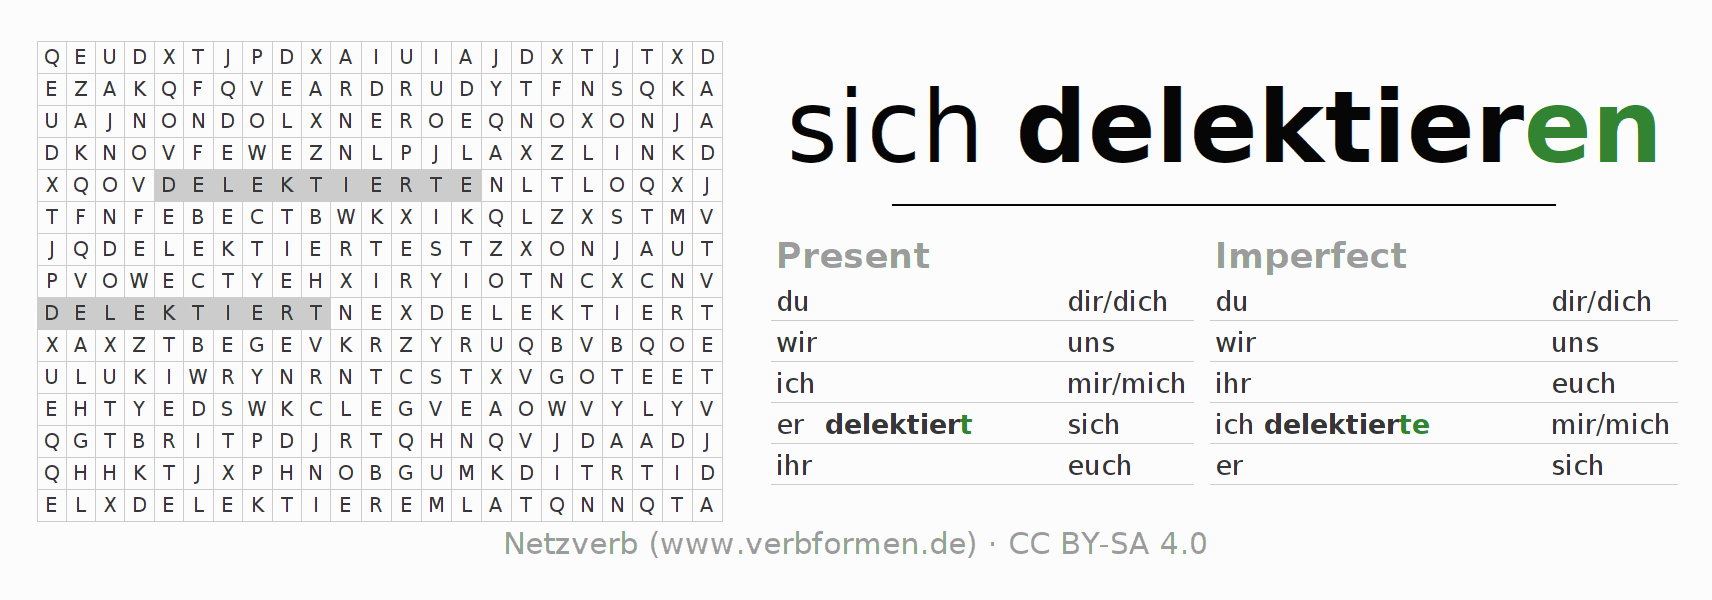 Word search puzzle for the conjugation of the verb sich delektieren